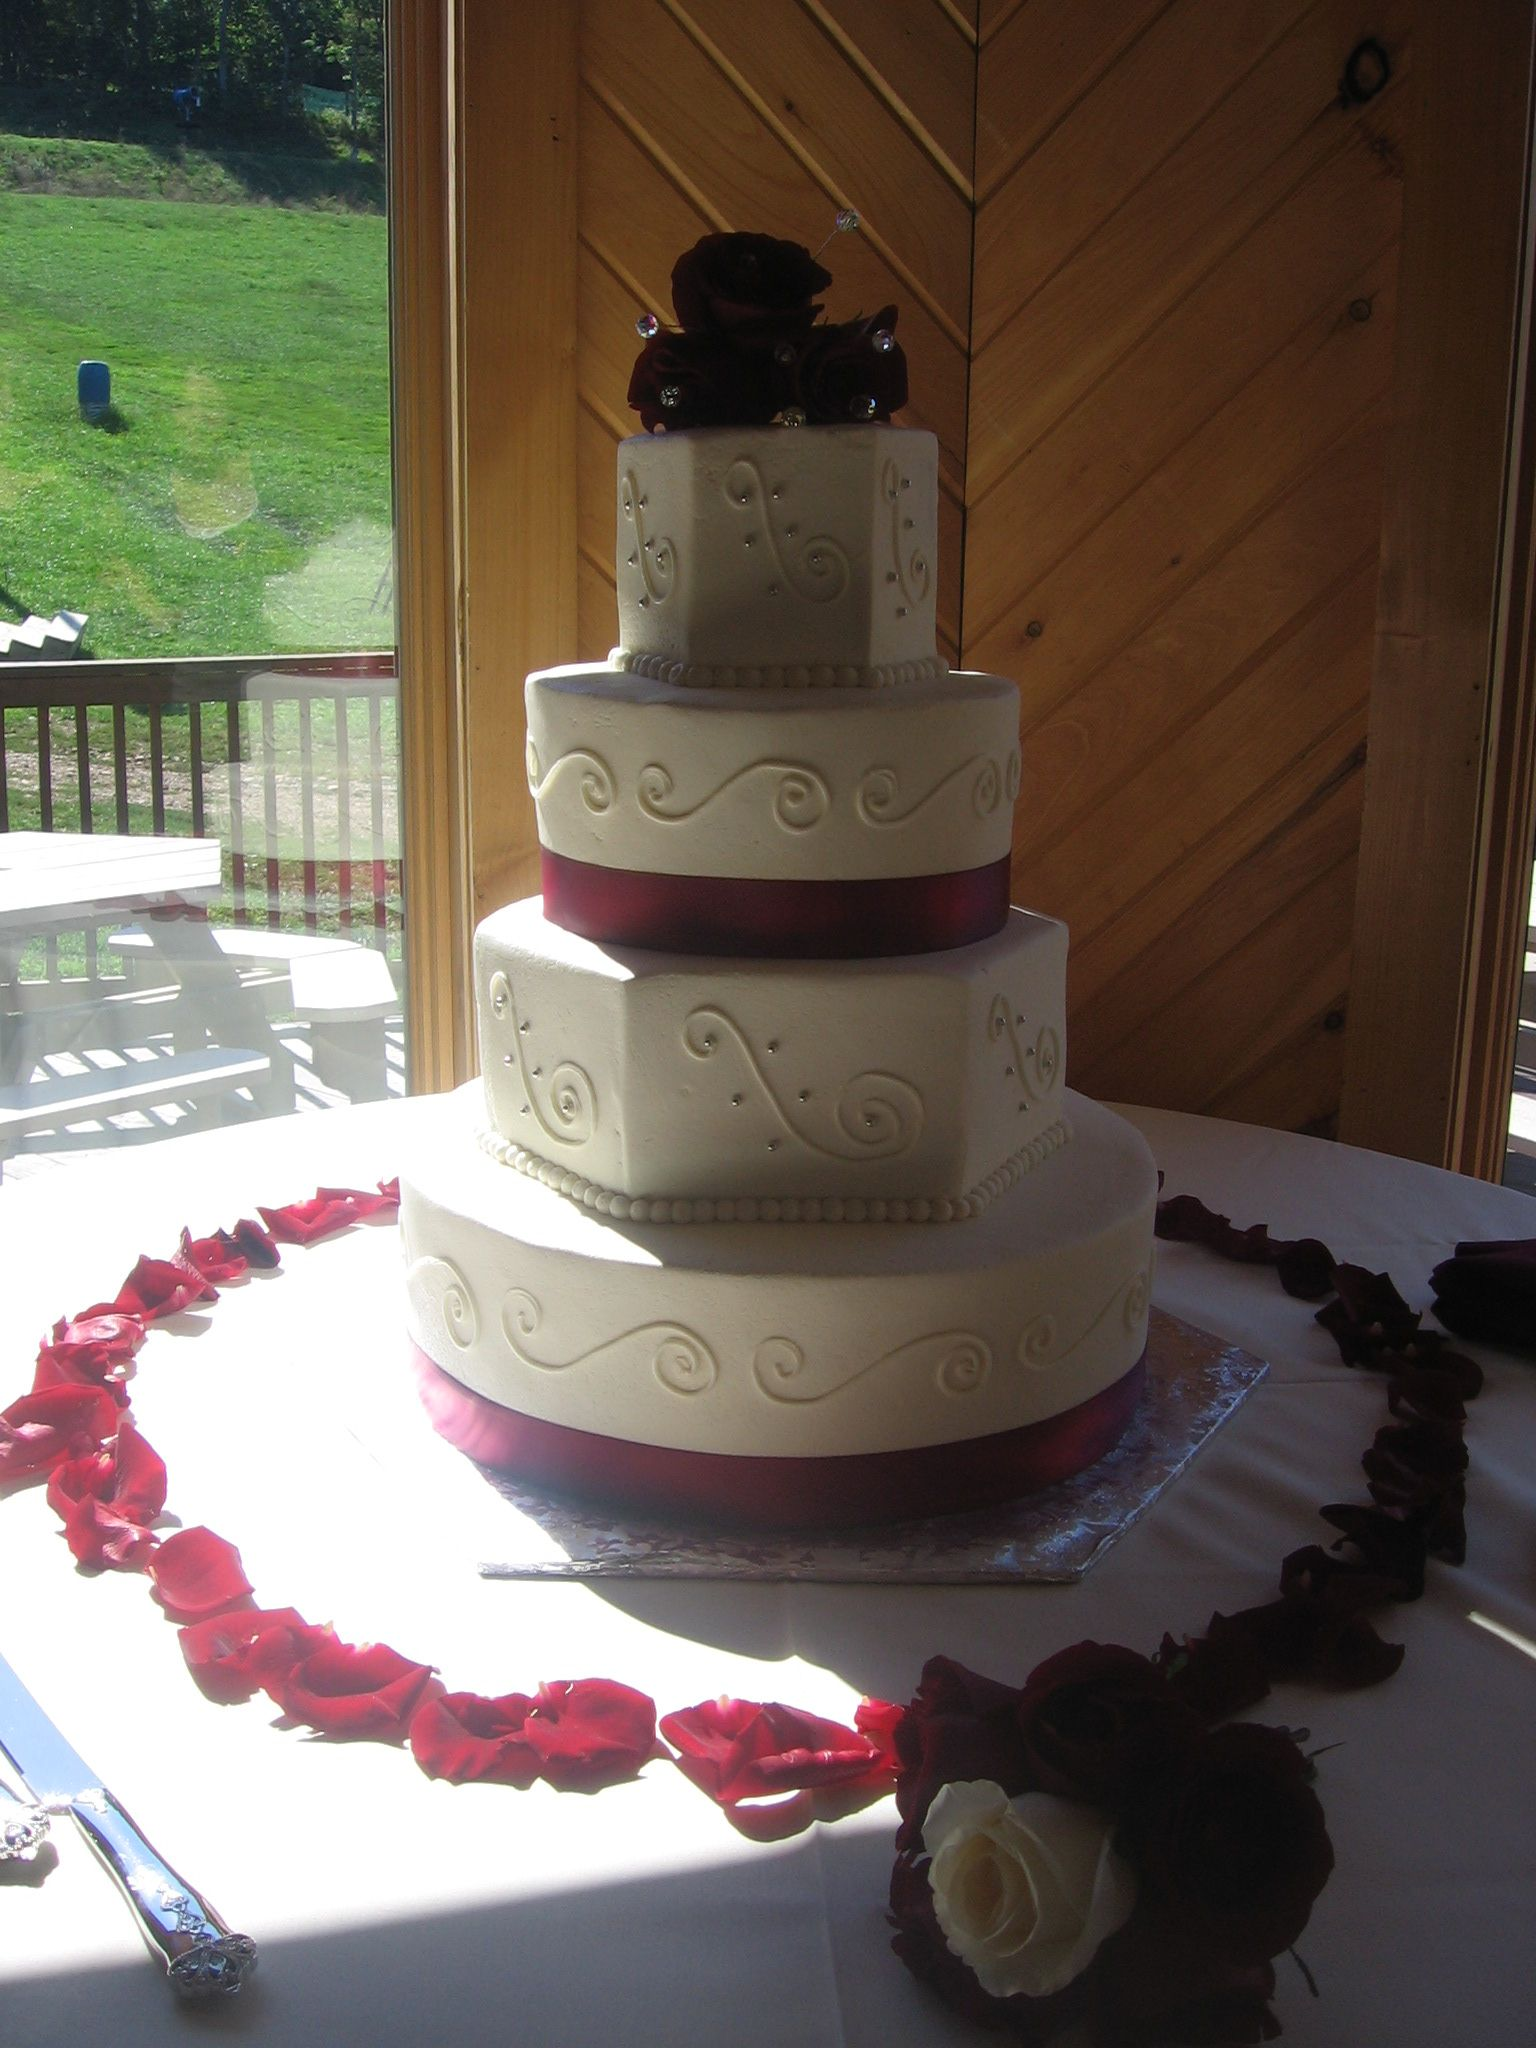 3 Tier Buttercream Wedding Cake By Main Street Sweets Bakery Out Of Fairfield PA